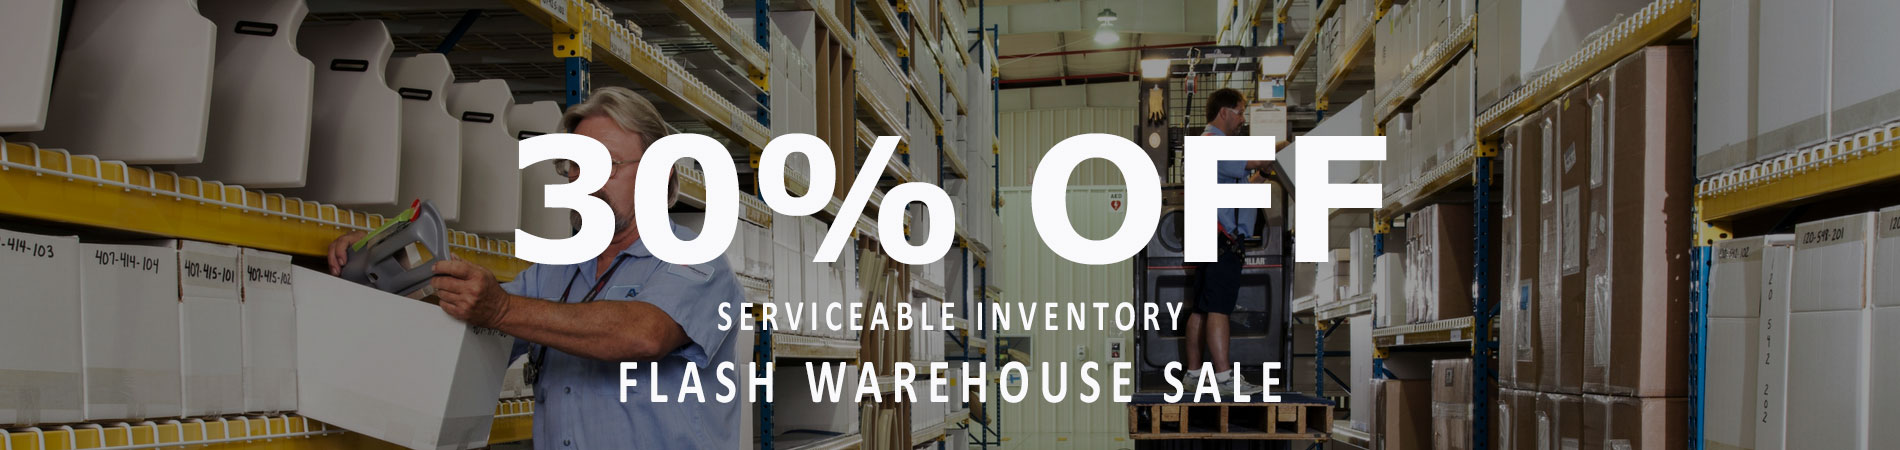 Warehouse Sale - 30% OFF